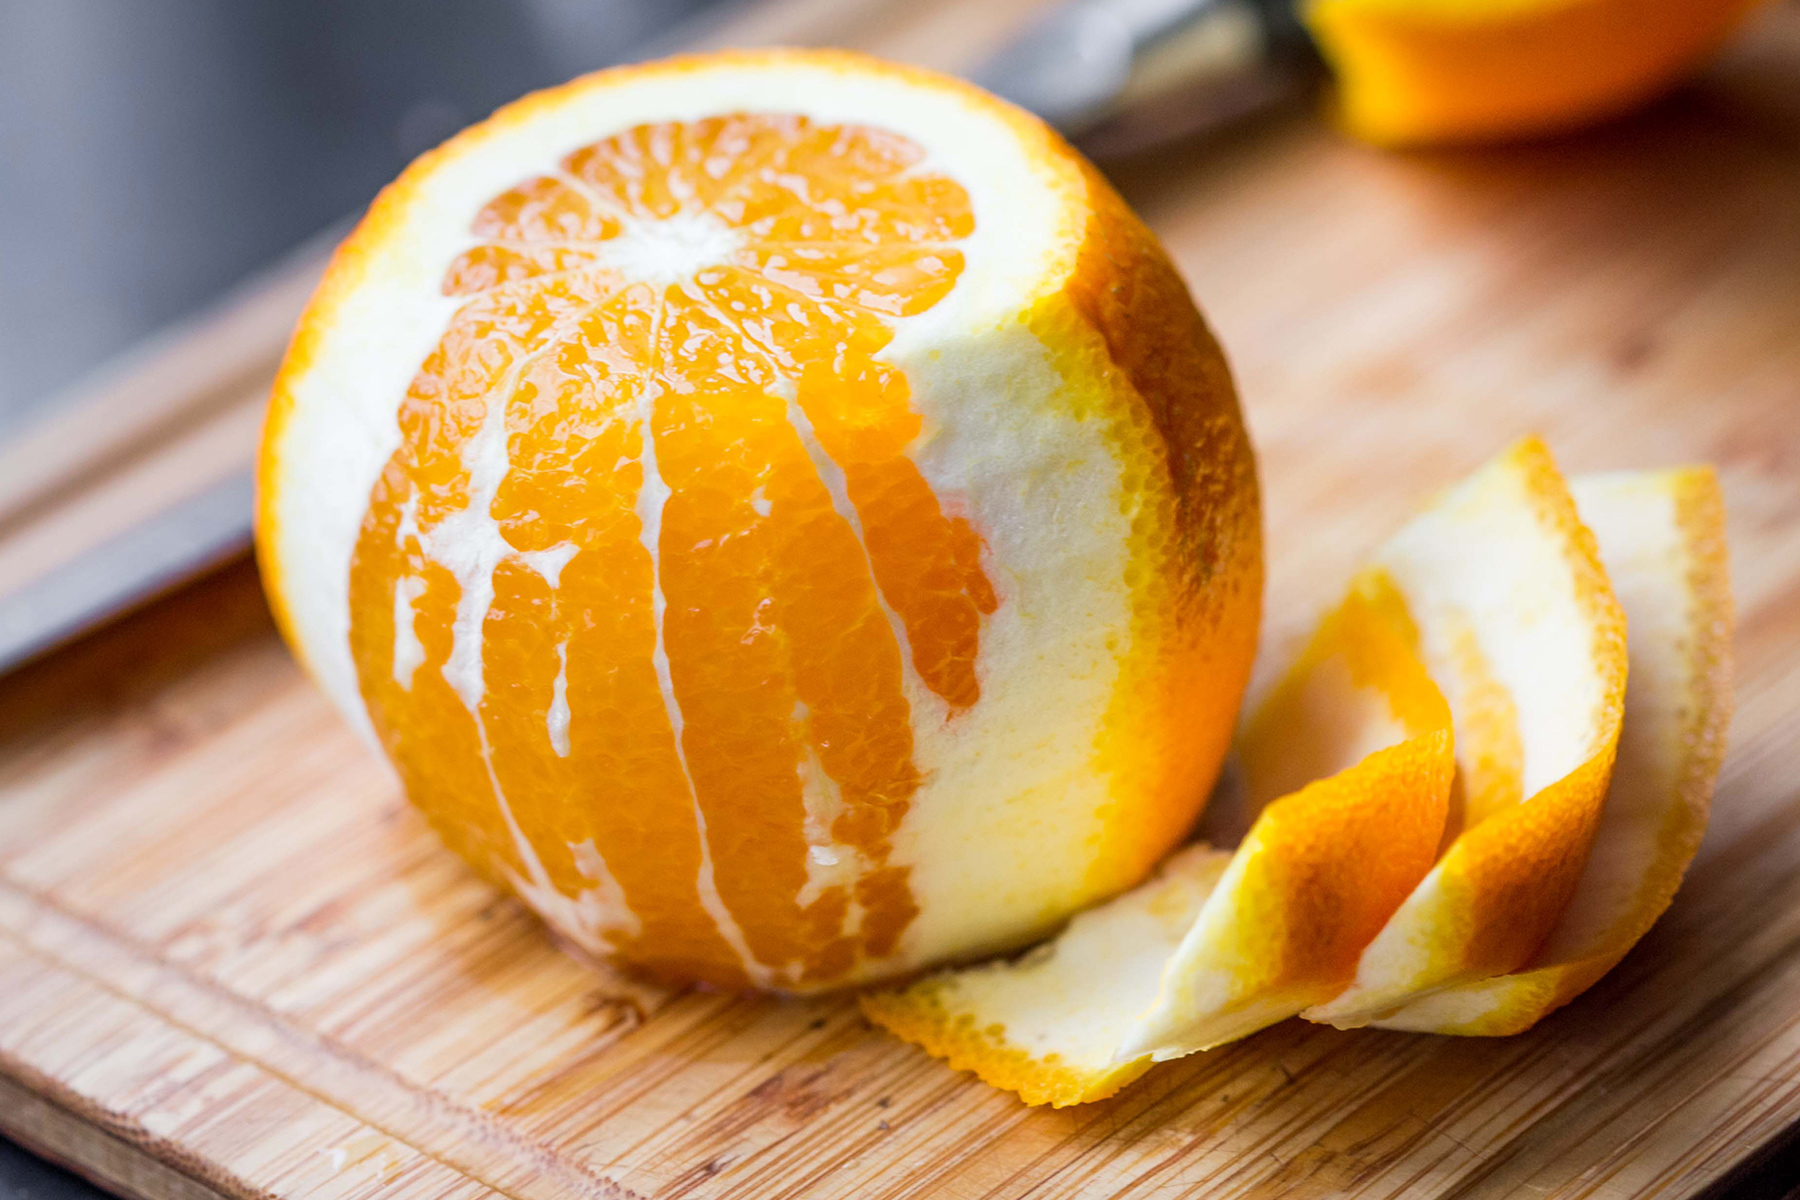 Orange peel contains chemicals which repel pests such as slugs.